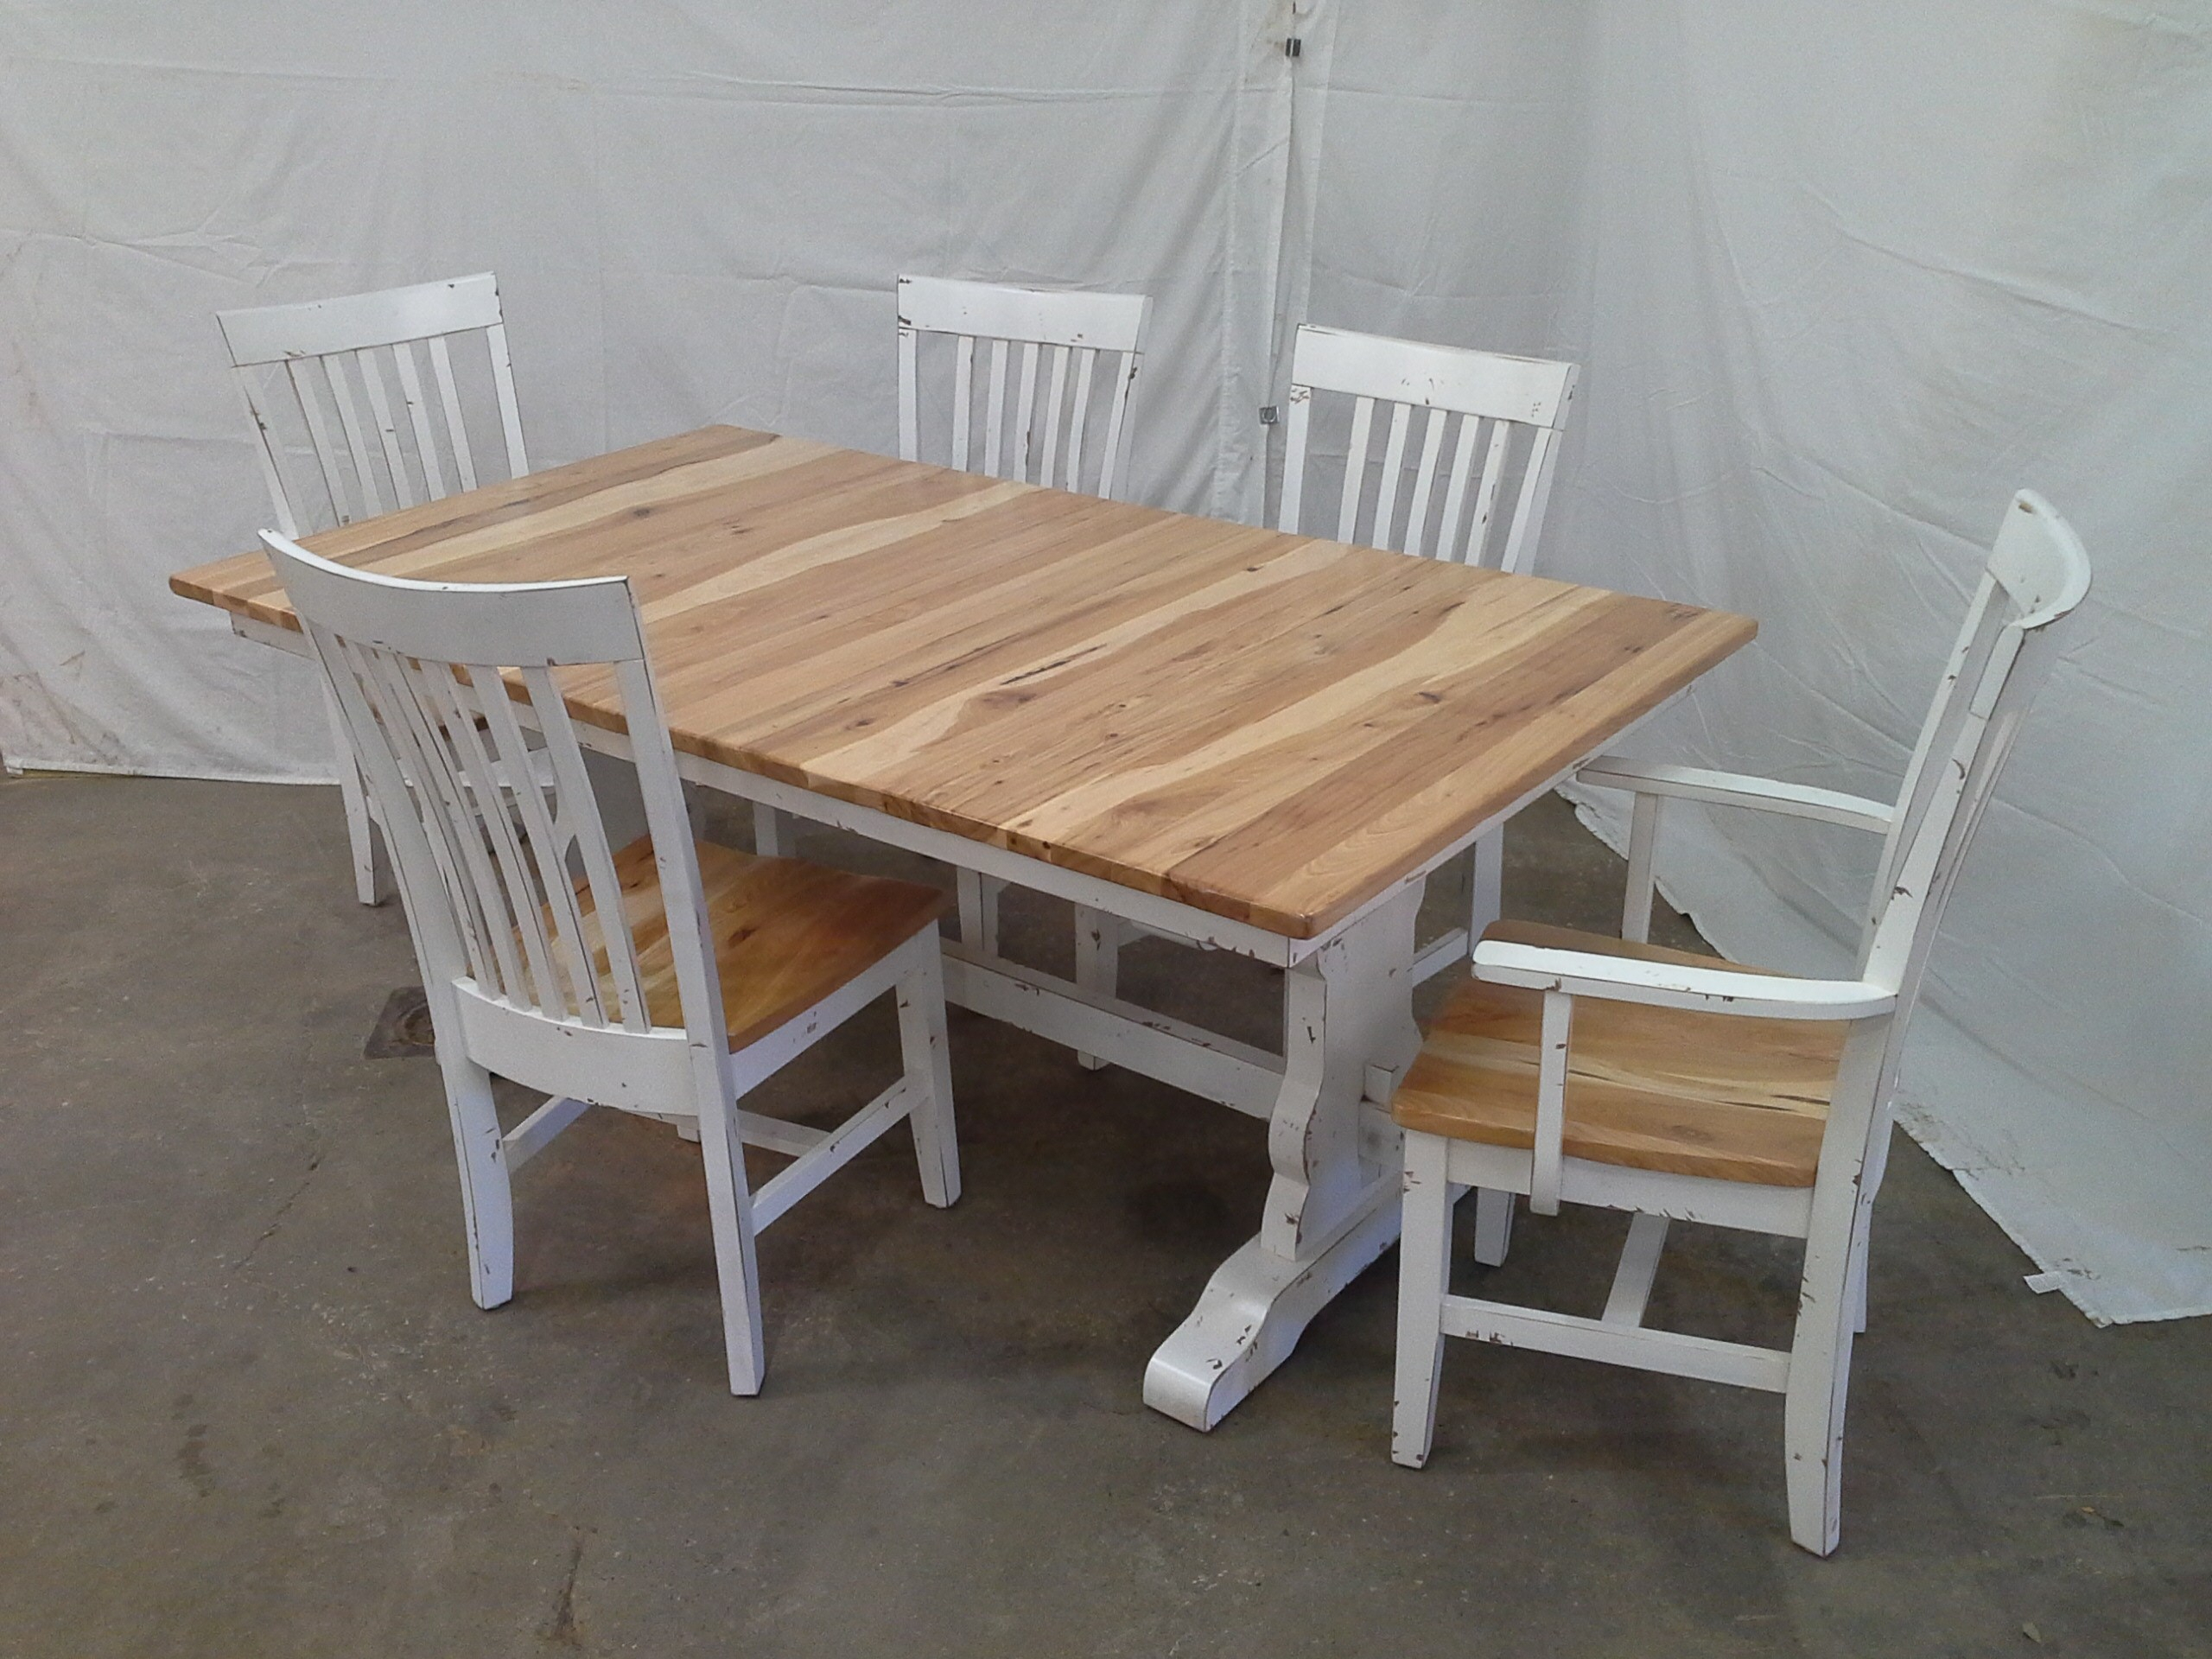 Table And Chair Sets For Your Dining Room Intended For Most Up To Date Reinert 5 Piece Dining Sets (View 9 of 20)